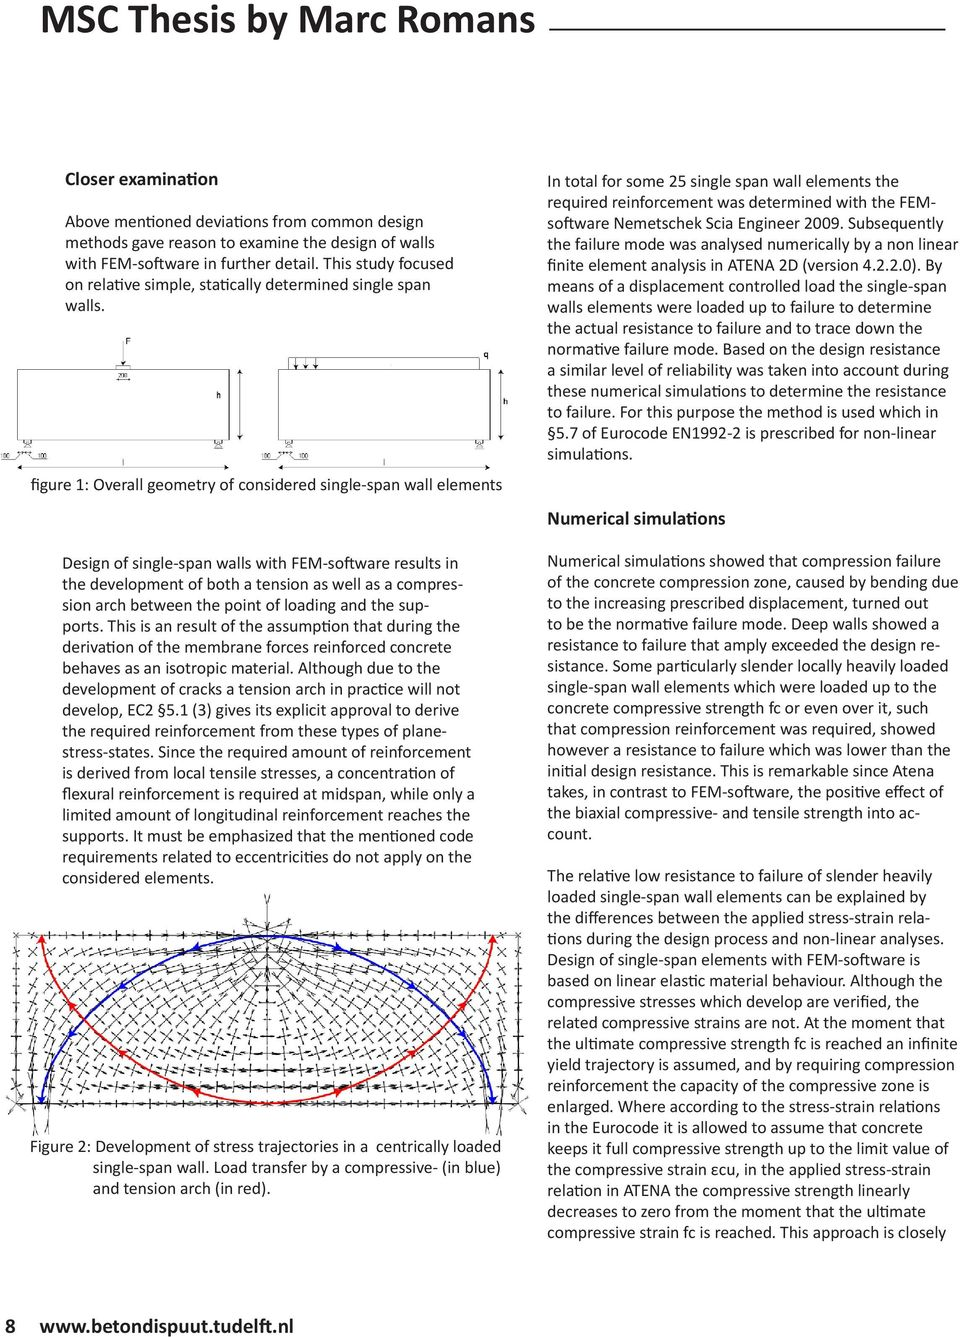 figure 1: Overall geometry of considered single-span wall elements Design of single-span walls with FEM-software results in the development of both a tension as well as a compression arch between the